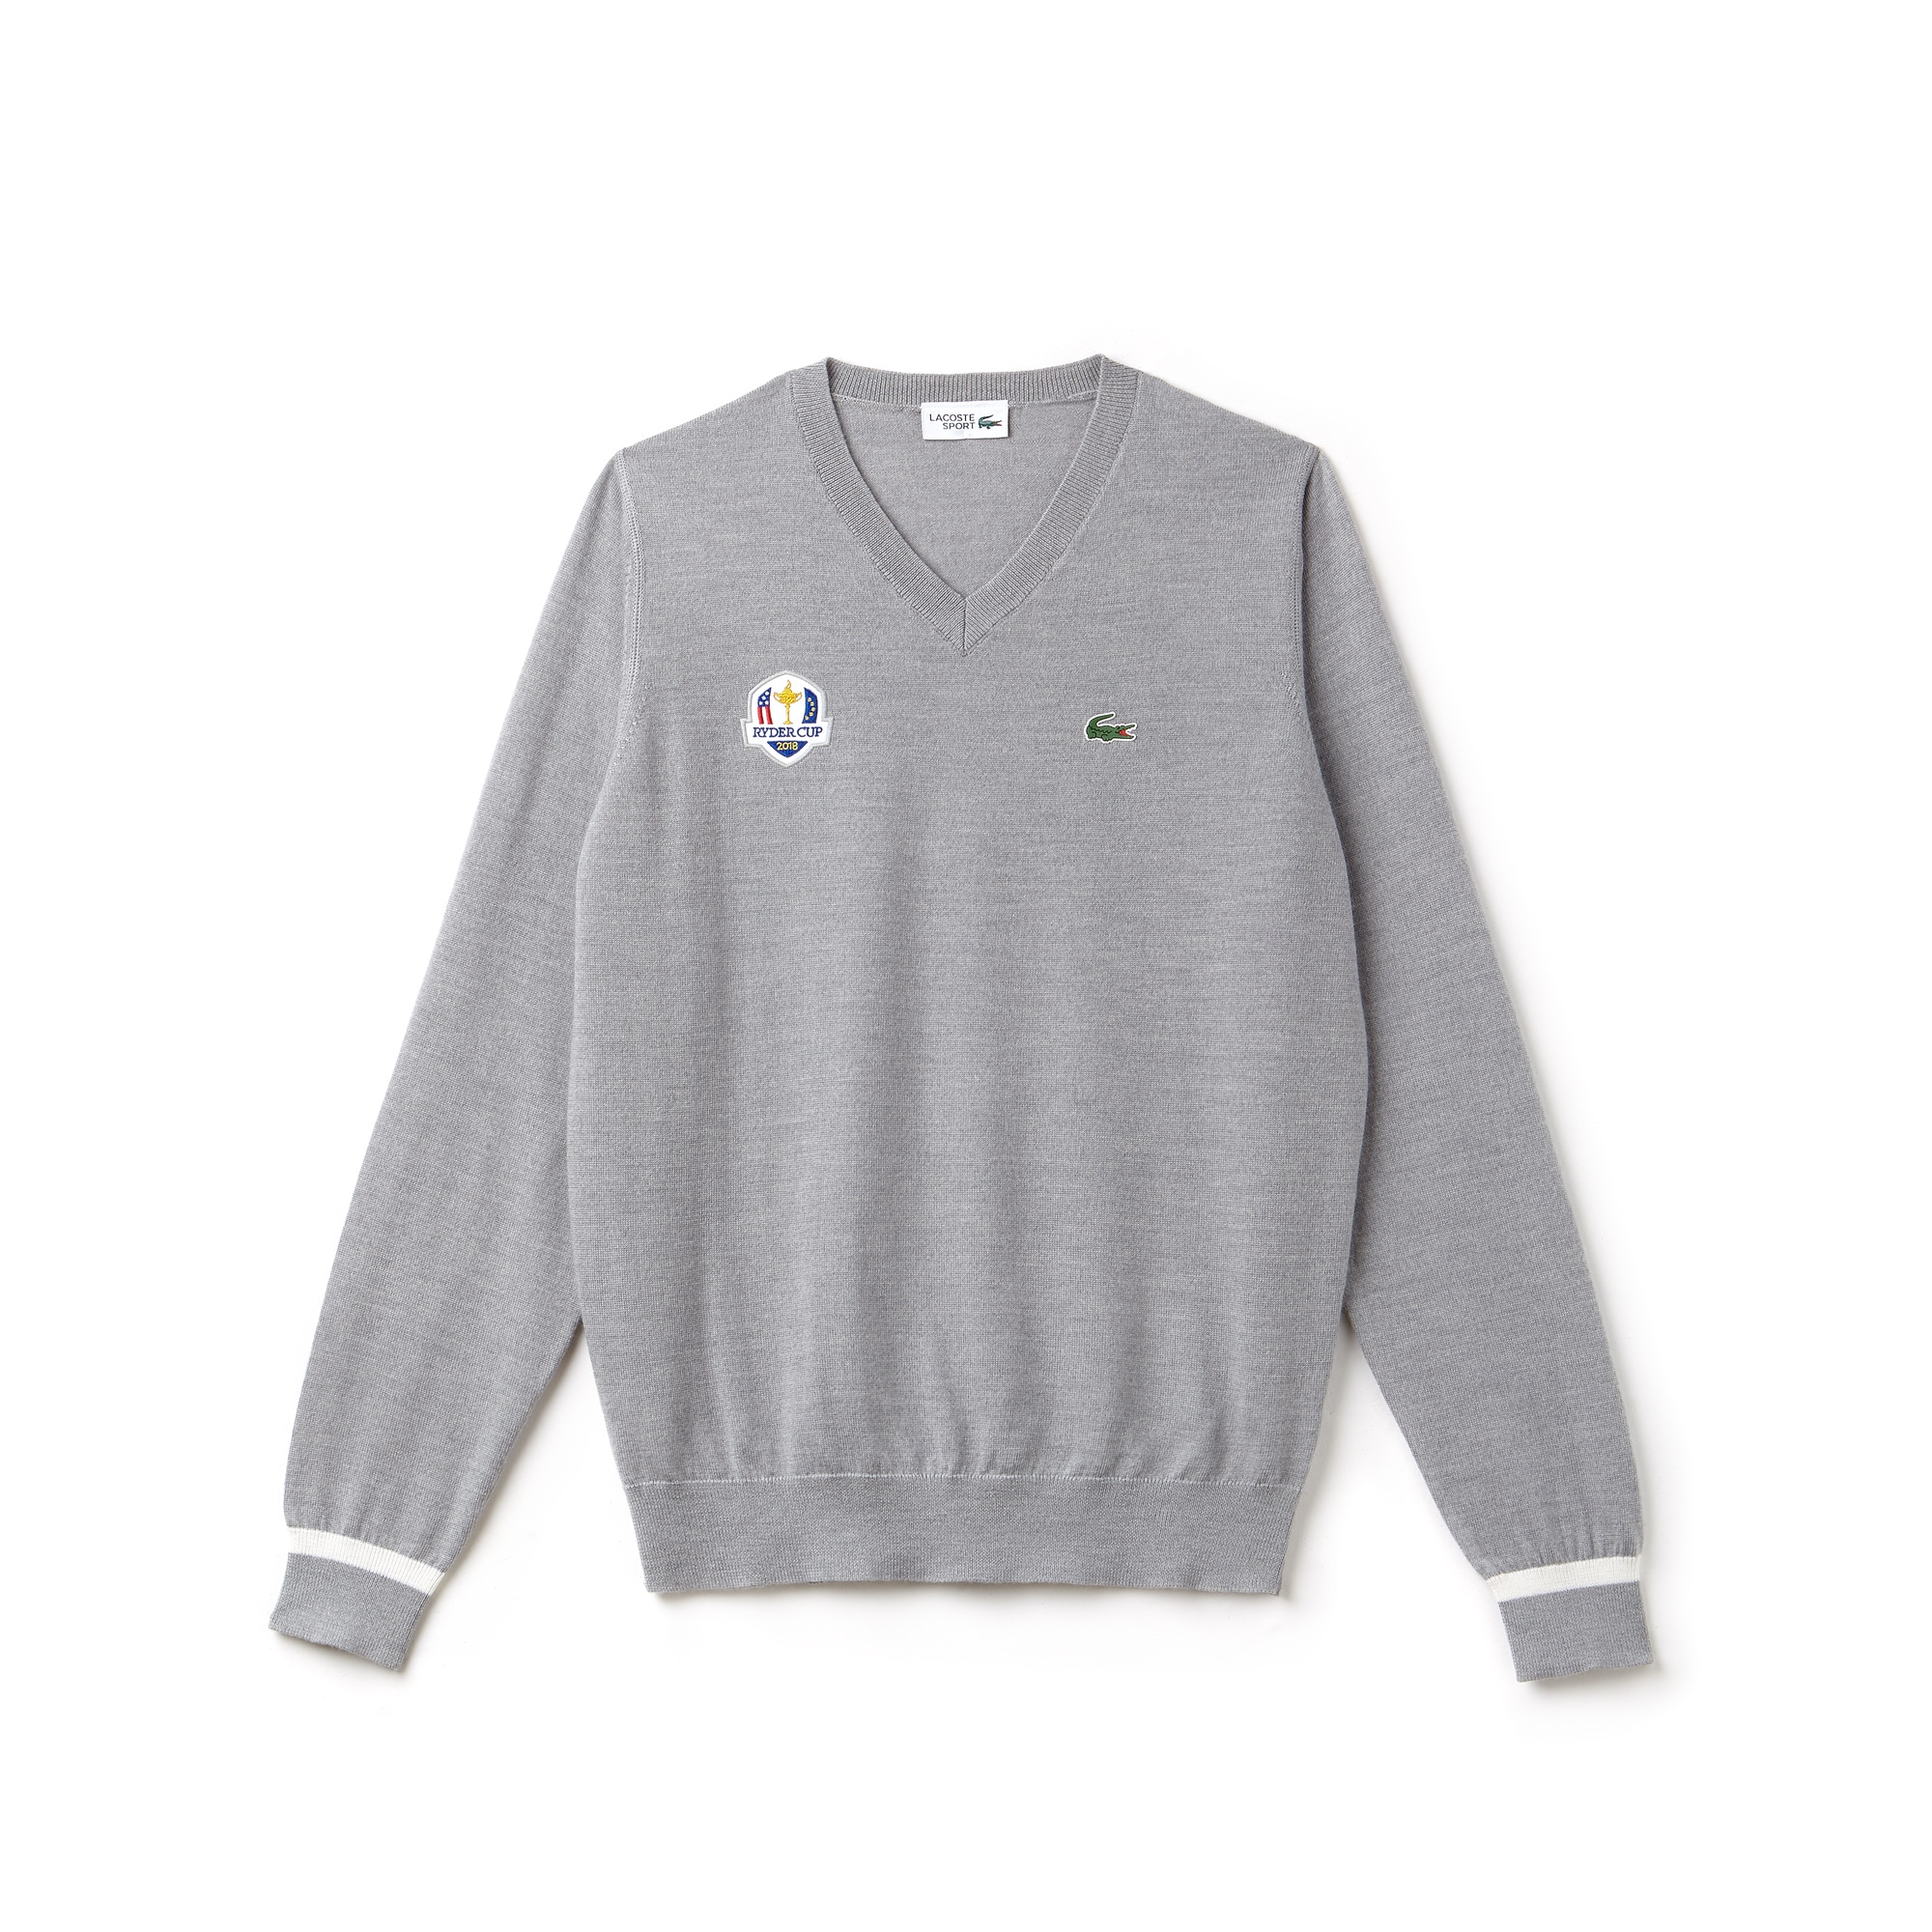 Men's Lacoste SPORT Ryder Cup Edition V-neck Wool Jersey Golf Sweater